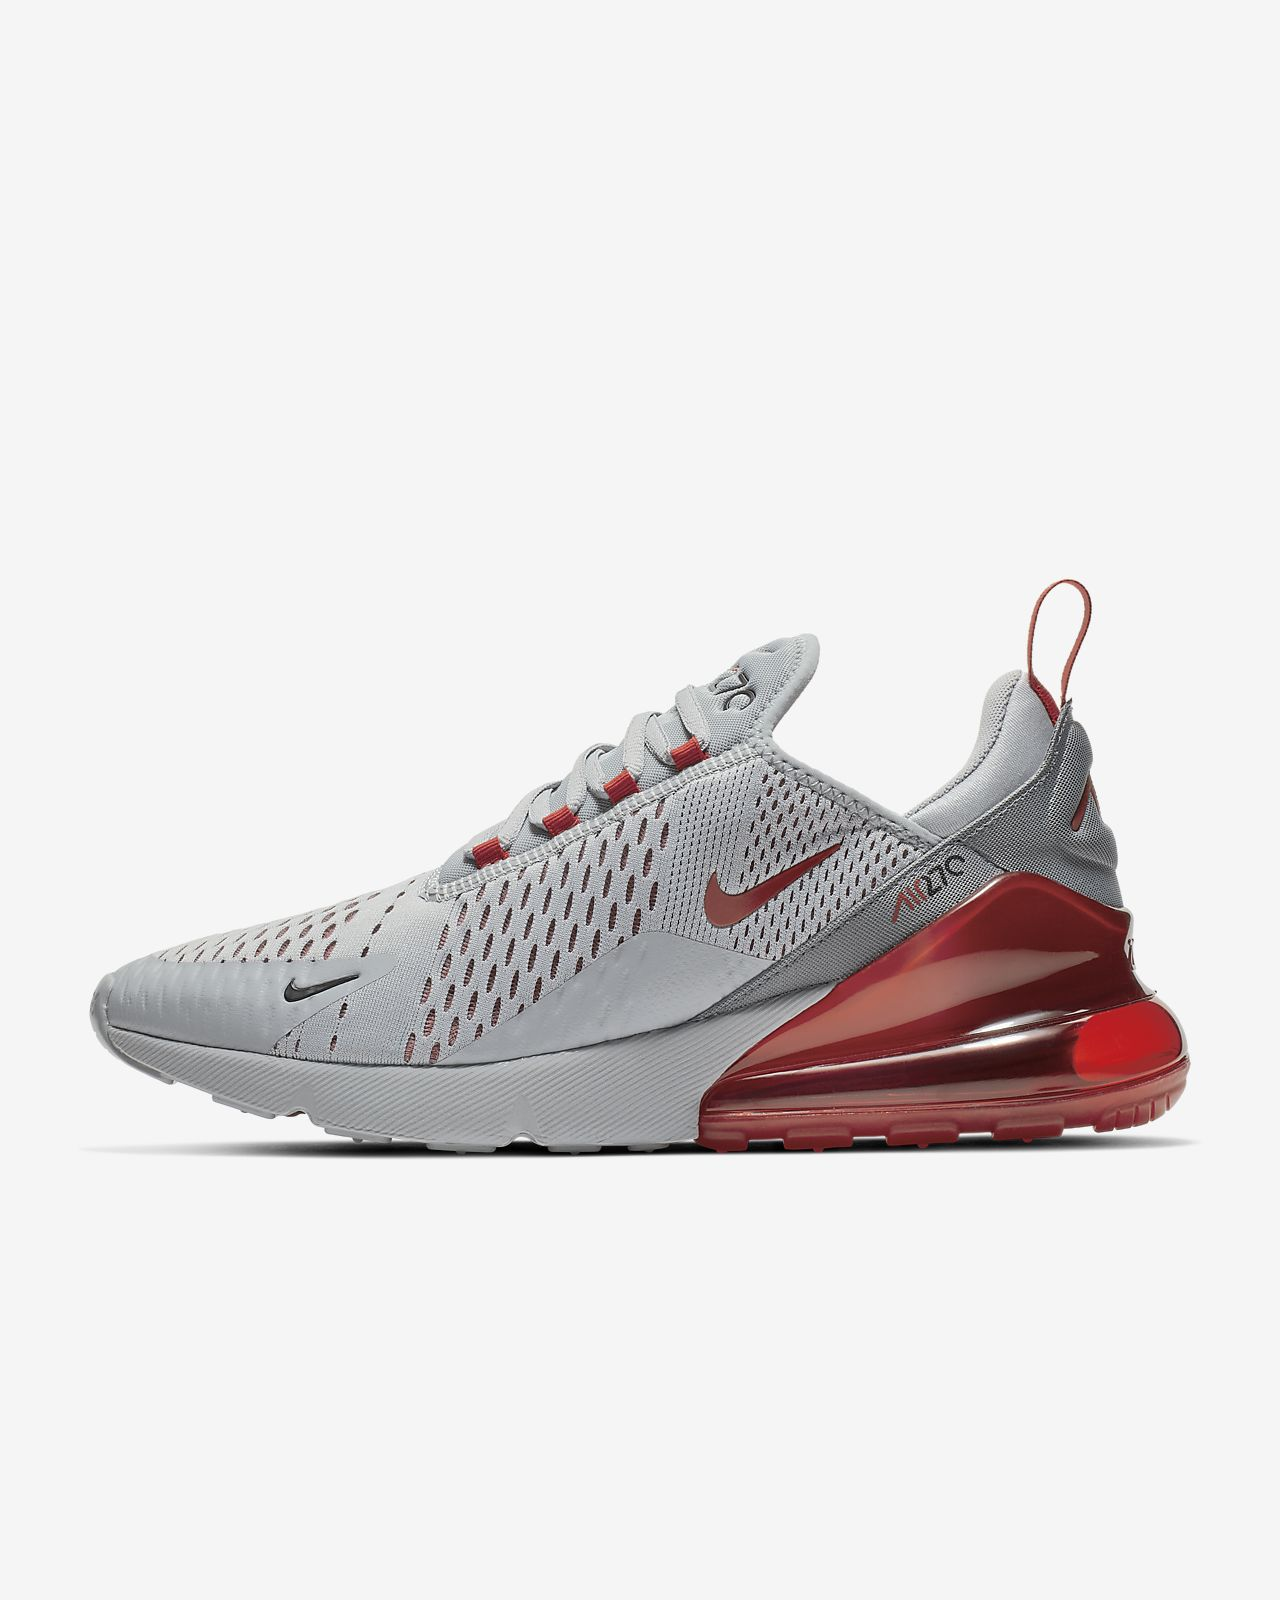 low priced a0c18 7090c Nike Air Max 270. 150 €